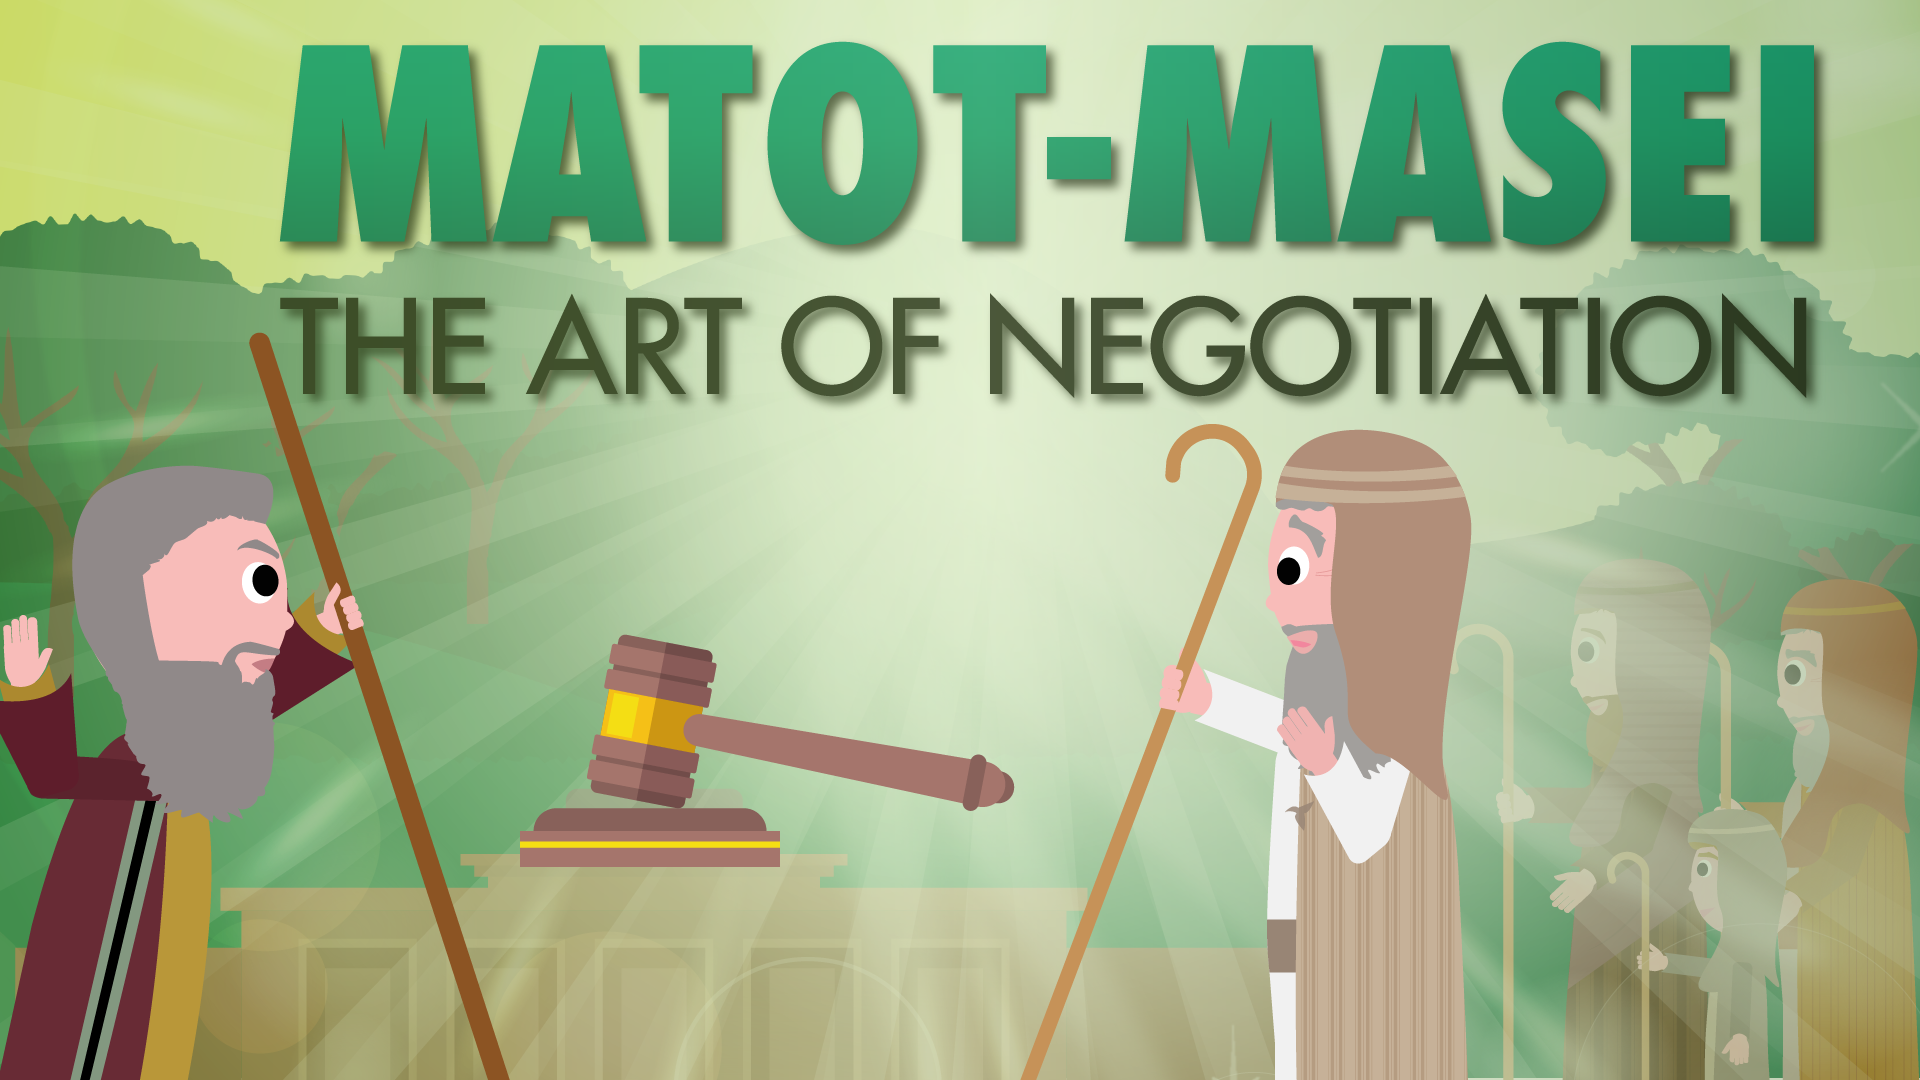 Matot-Masei: The Art of Negotiation